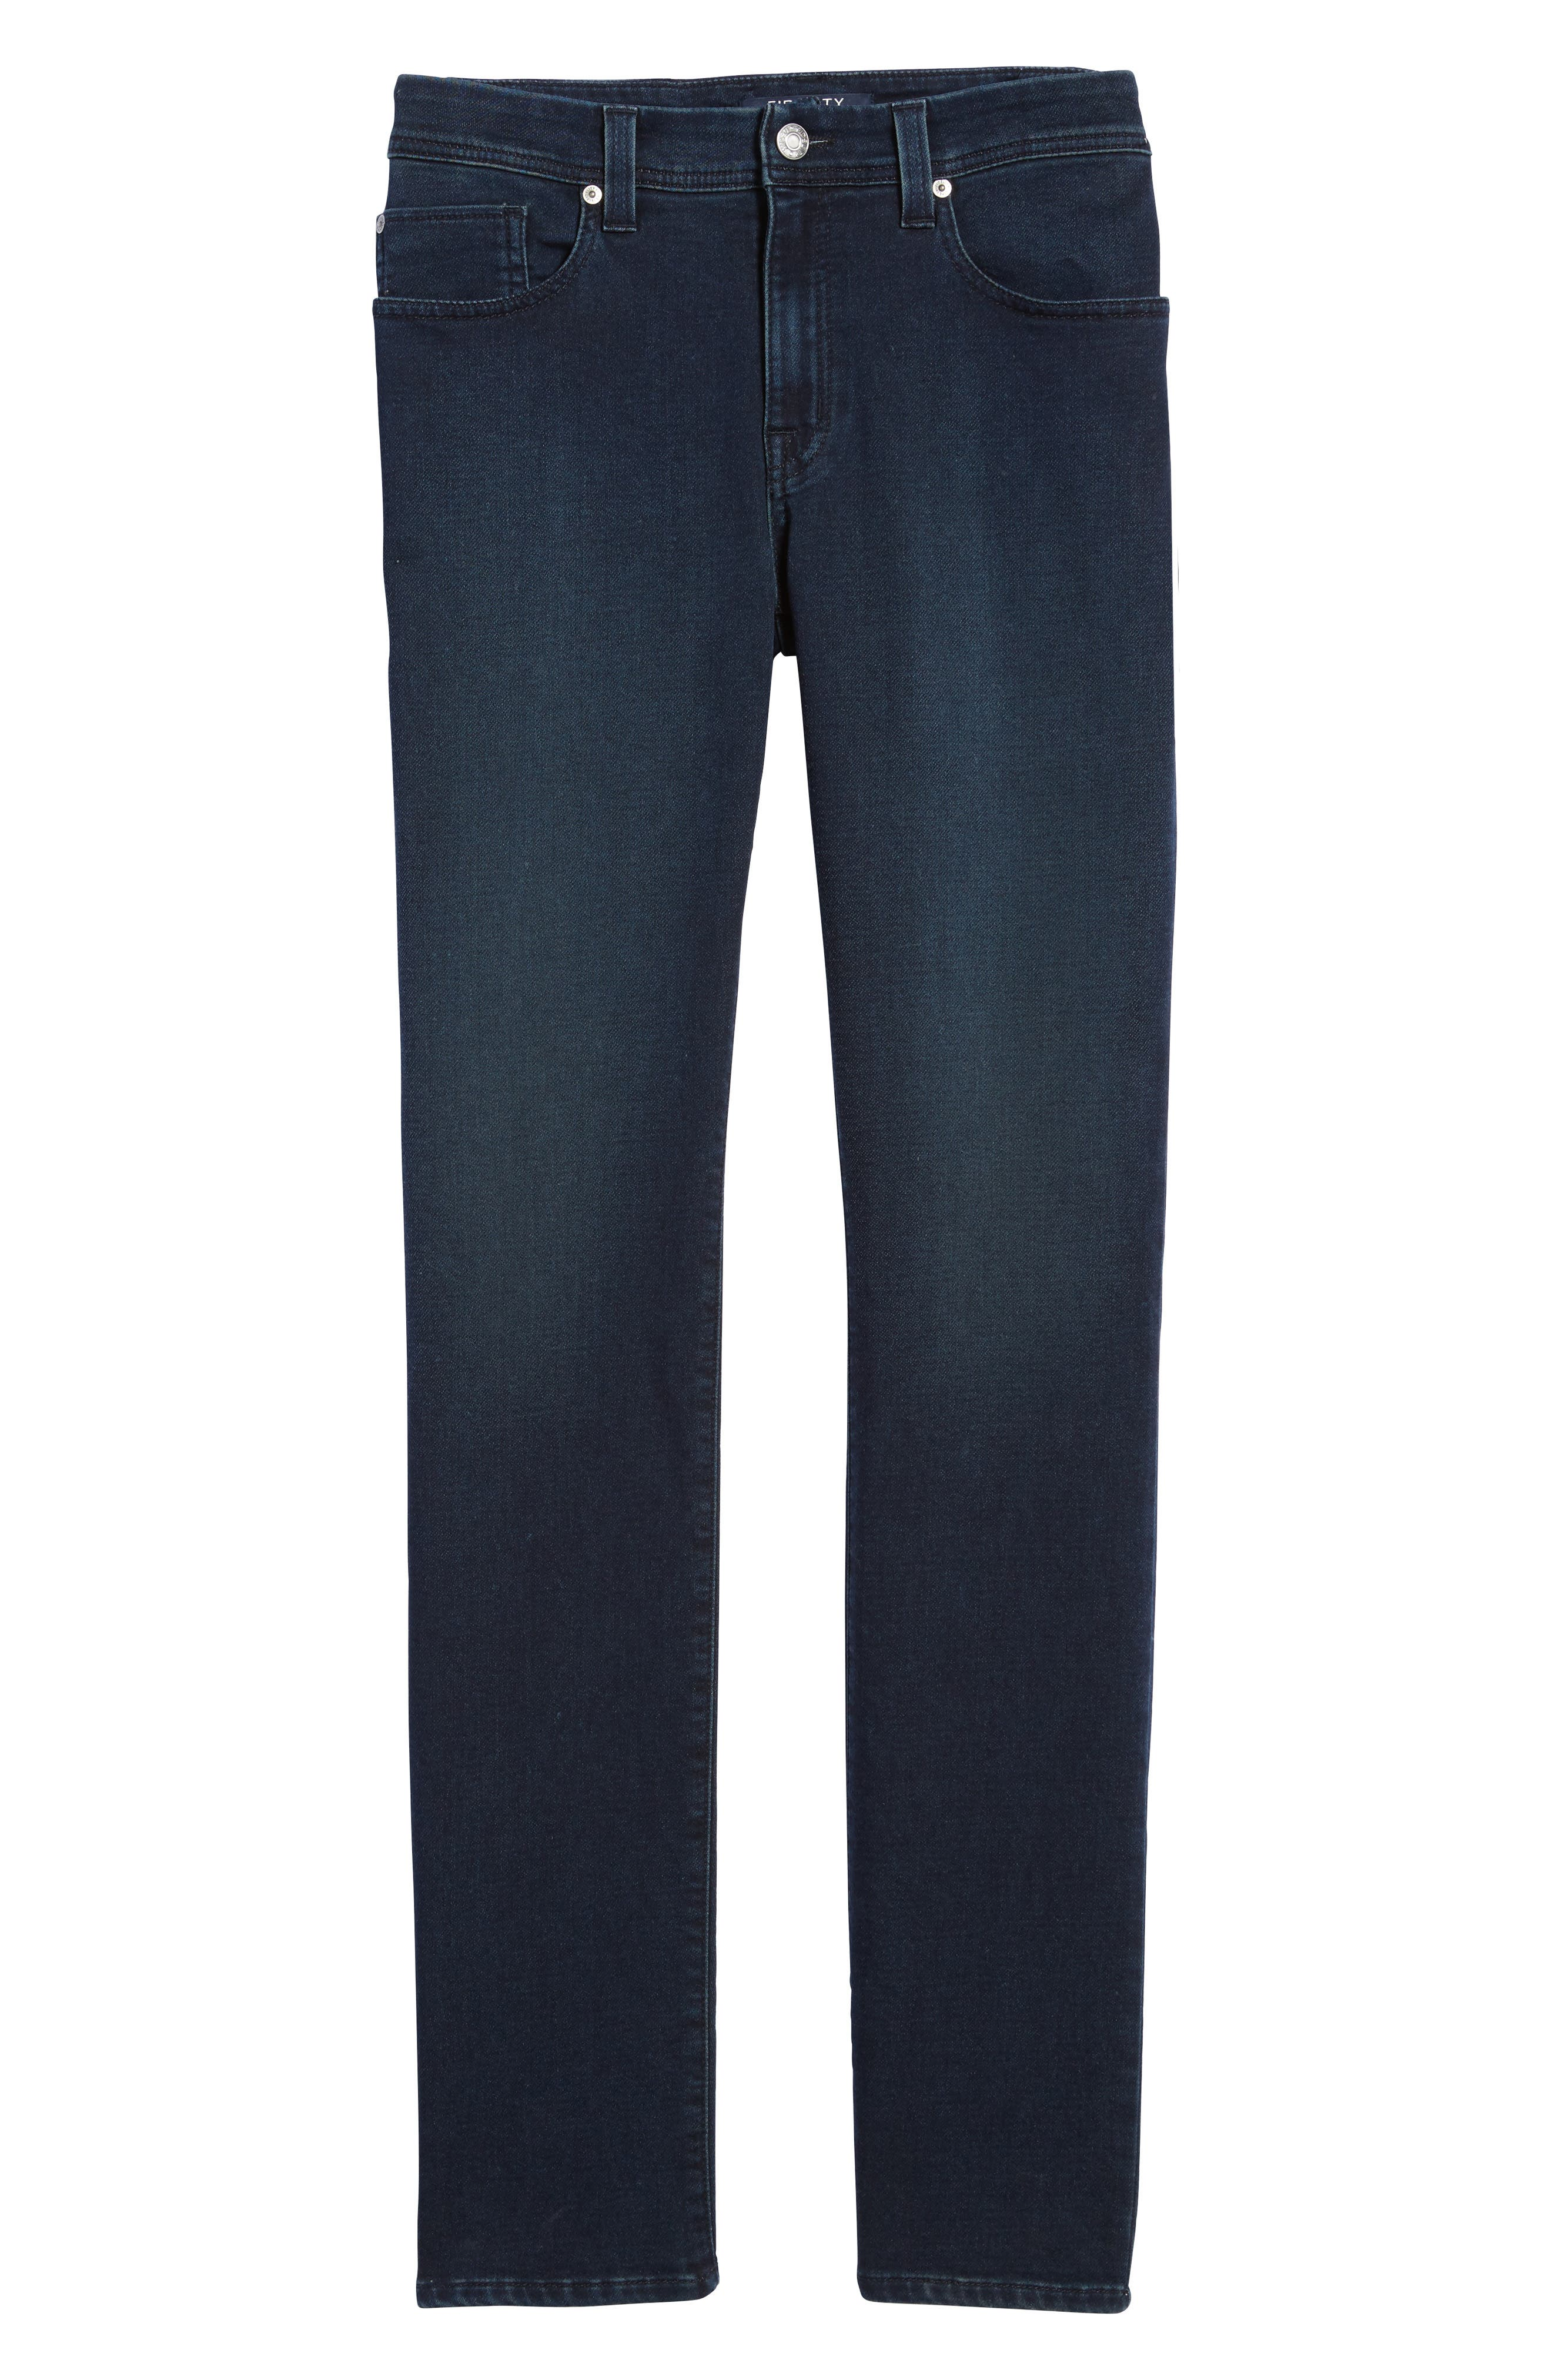 Jimmy Slim Straight Leg Jeans,                             Alternate thumbnail 7, color,                             Oxy Midnight